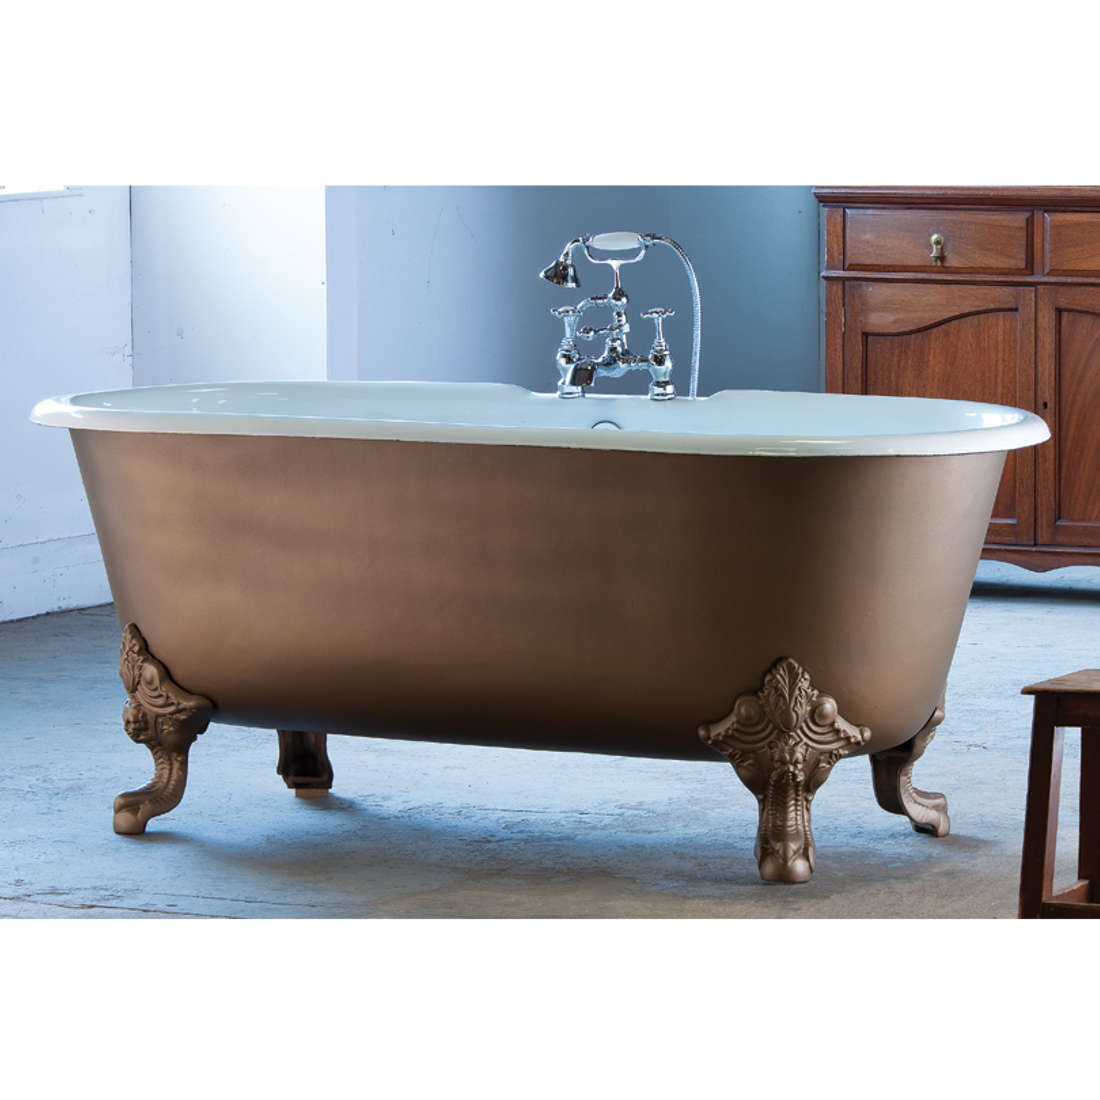 An image of Arroll Baths - The Cheverny Bath - Roll Top Bath - Carmine Red